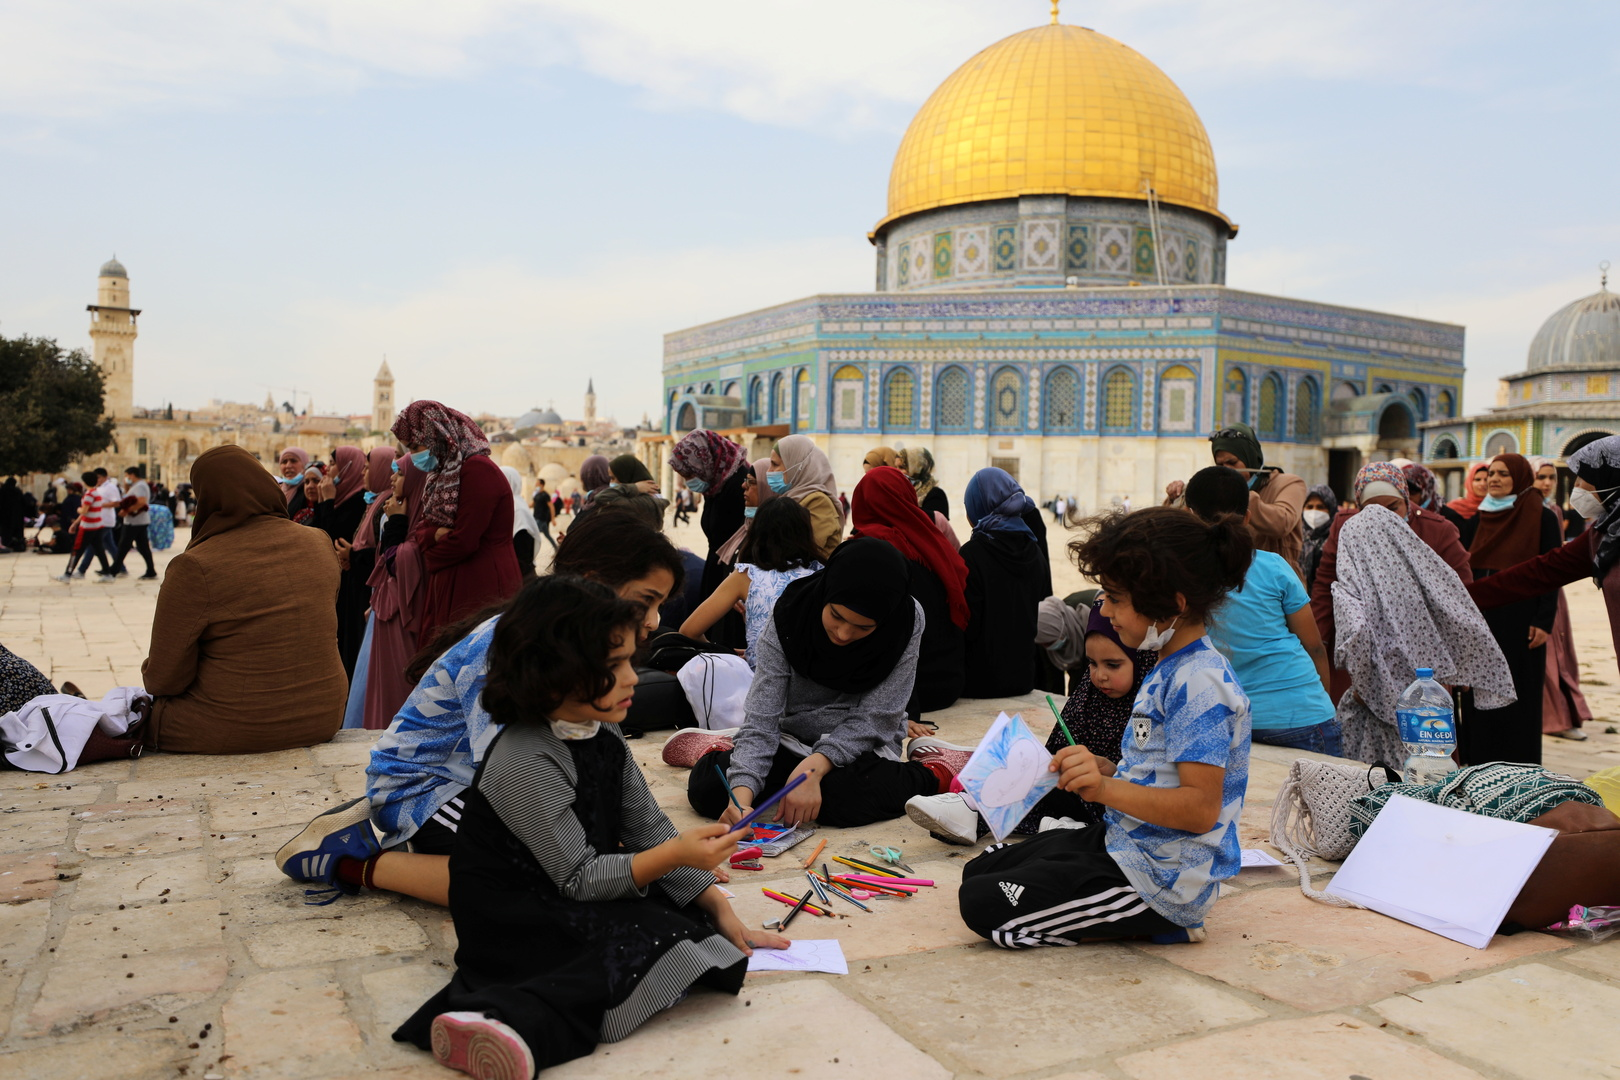 Jordan, Egypt and Palestine affirm the centrality of the Palestinian cause and the two-state solution